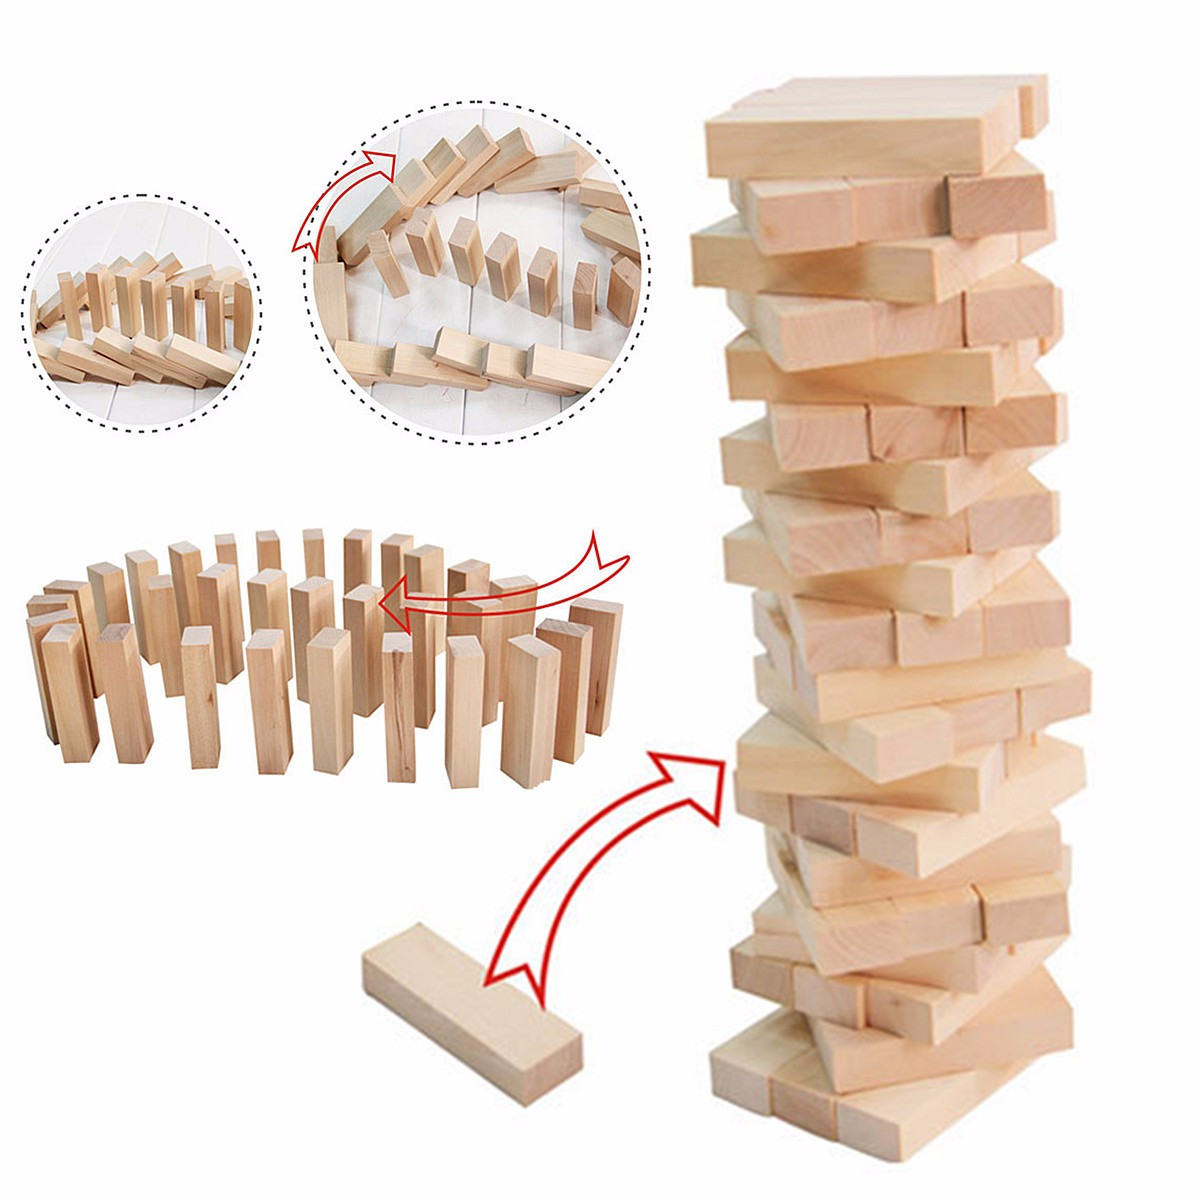 Wooden Stacking Tumbling Tower Fun 57 Blocks Board Game Kids Family Toy